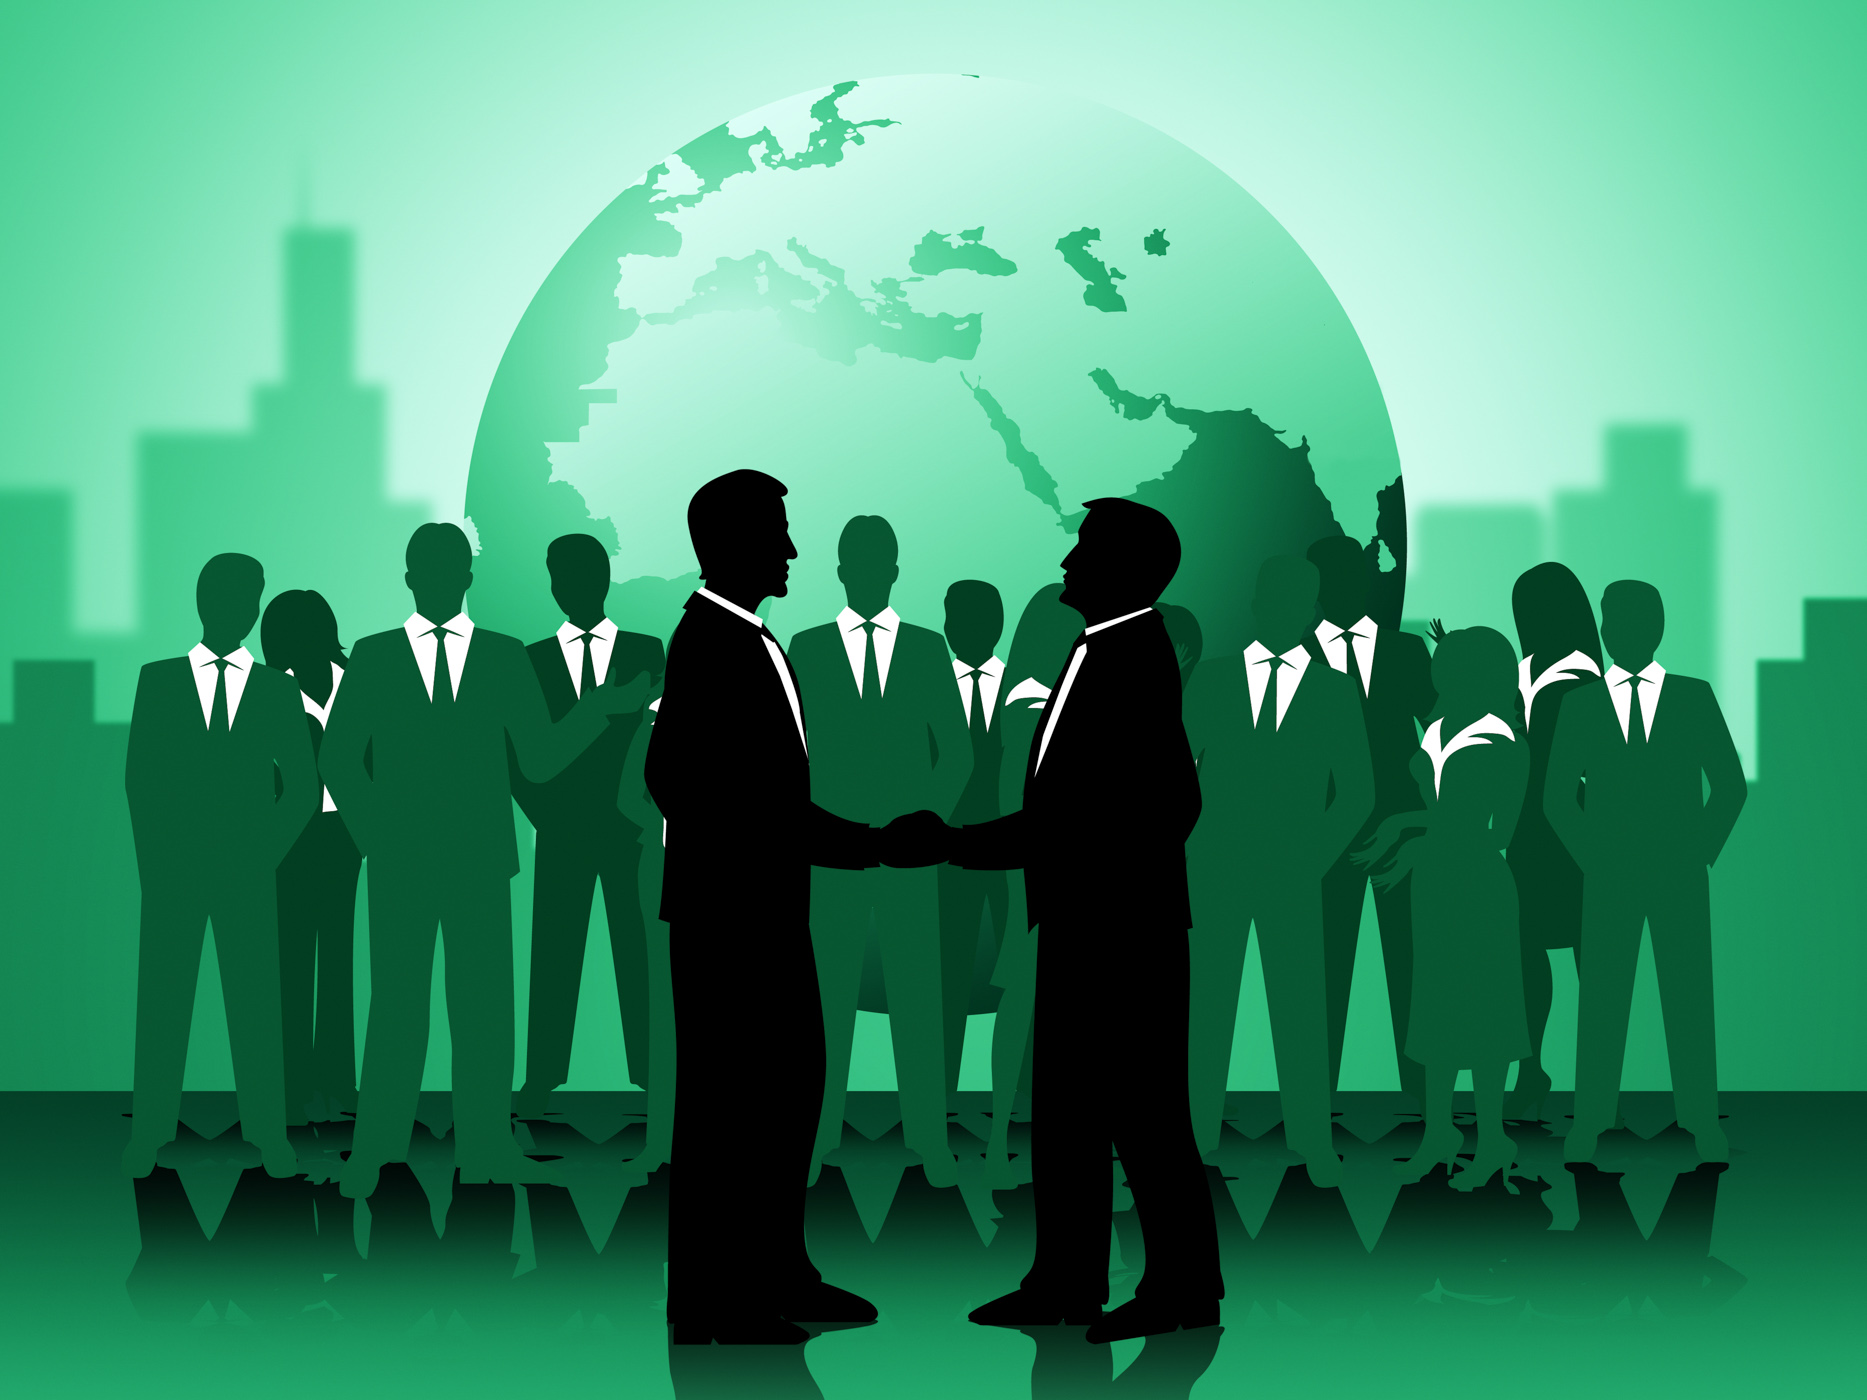 Globe Partnership Means Working Together And Earth, Planet, Worldly, Worktogether, Unity, HQ Photo